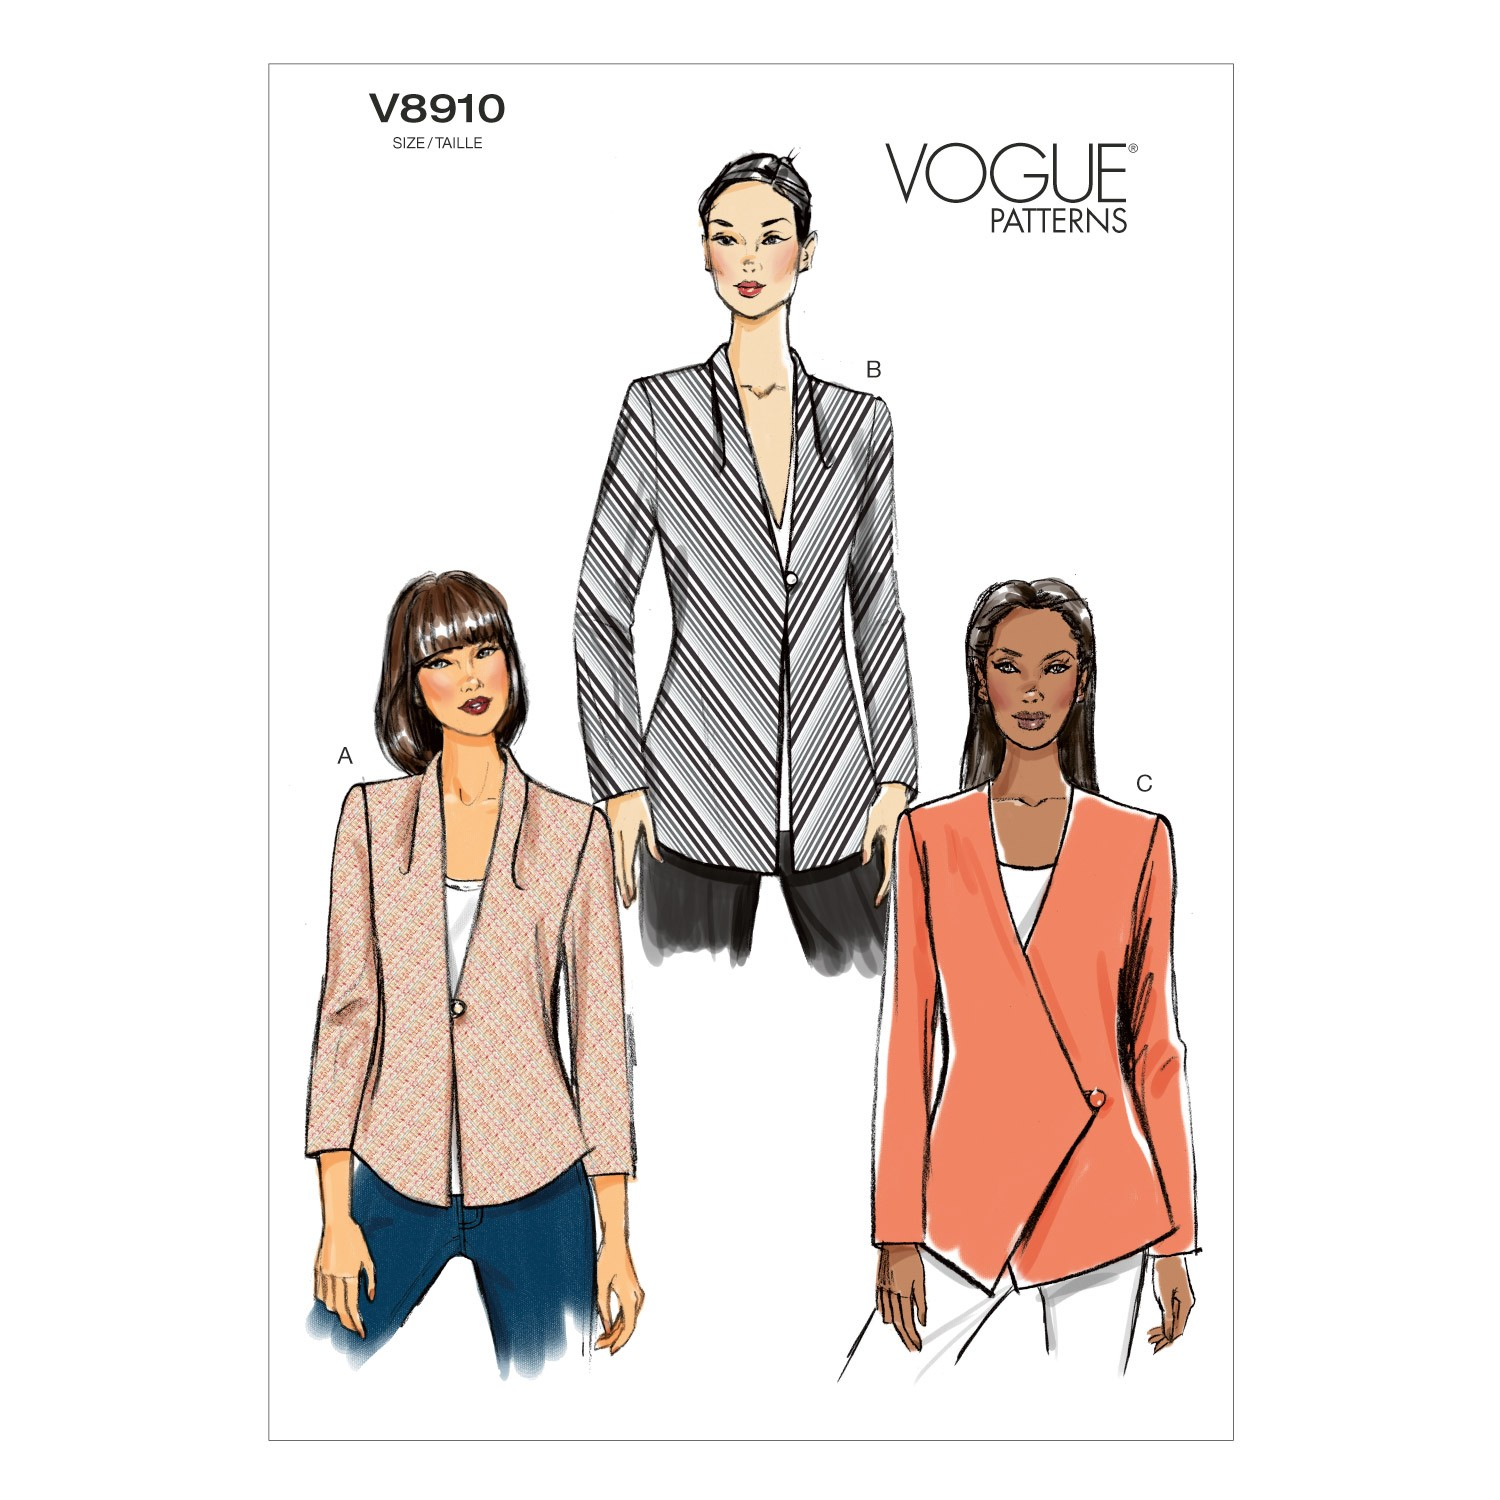 Vogue Sewing Pattern V8910 Women's Jacket With Shoulder Pads